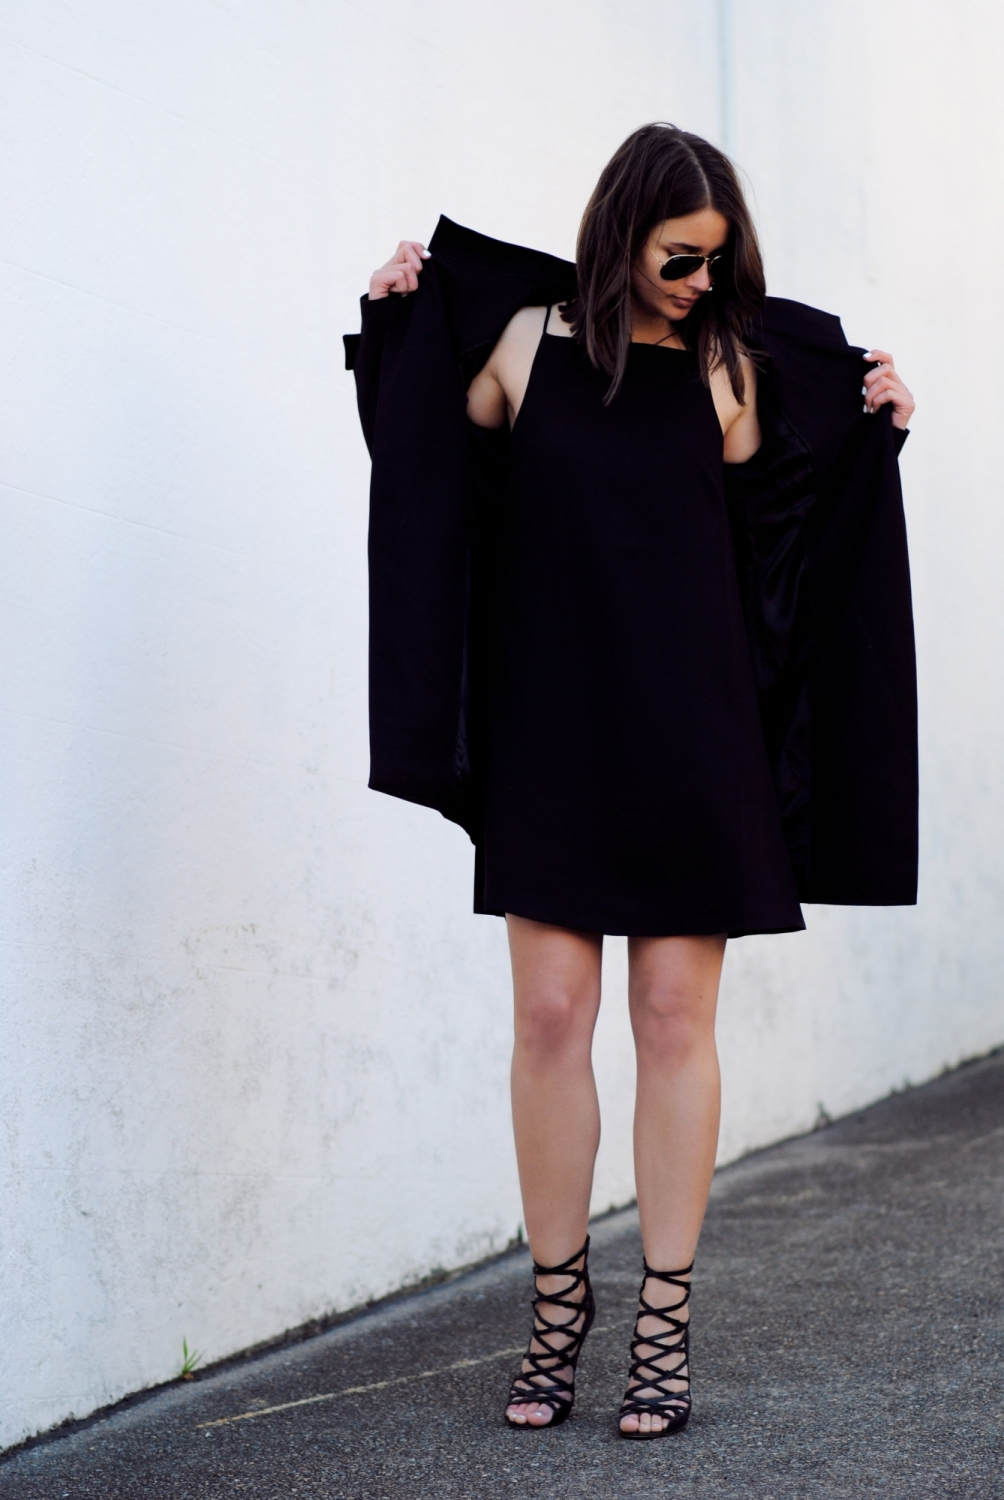 harper and harley_fashion style blogger_black outfit_asos dress_02